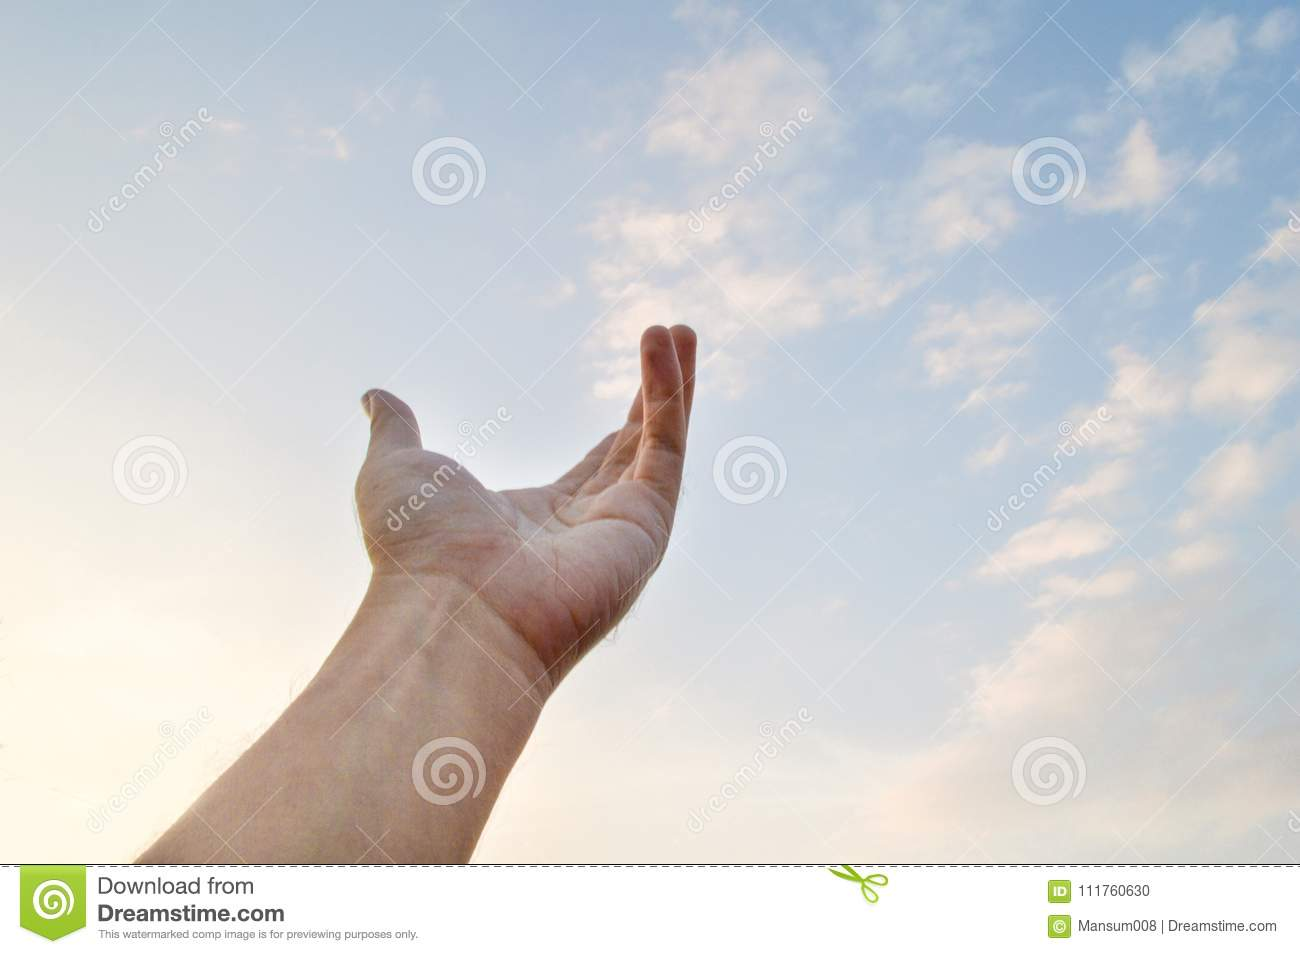 Adult hand reaching out towards the sky